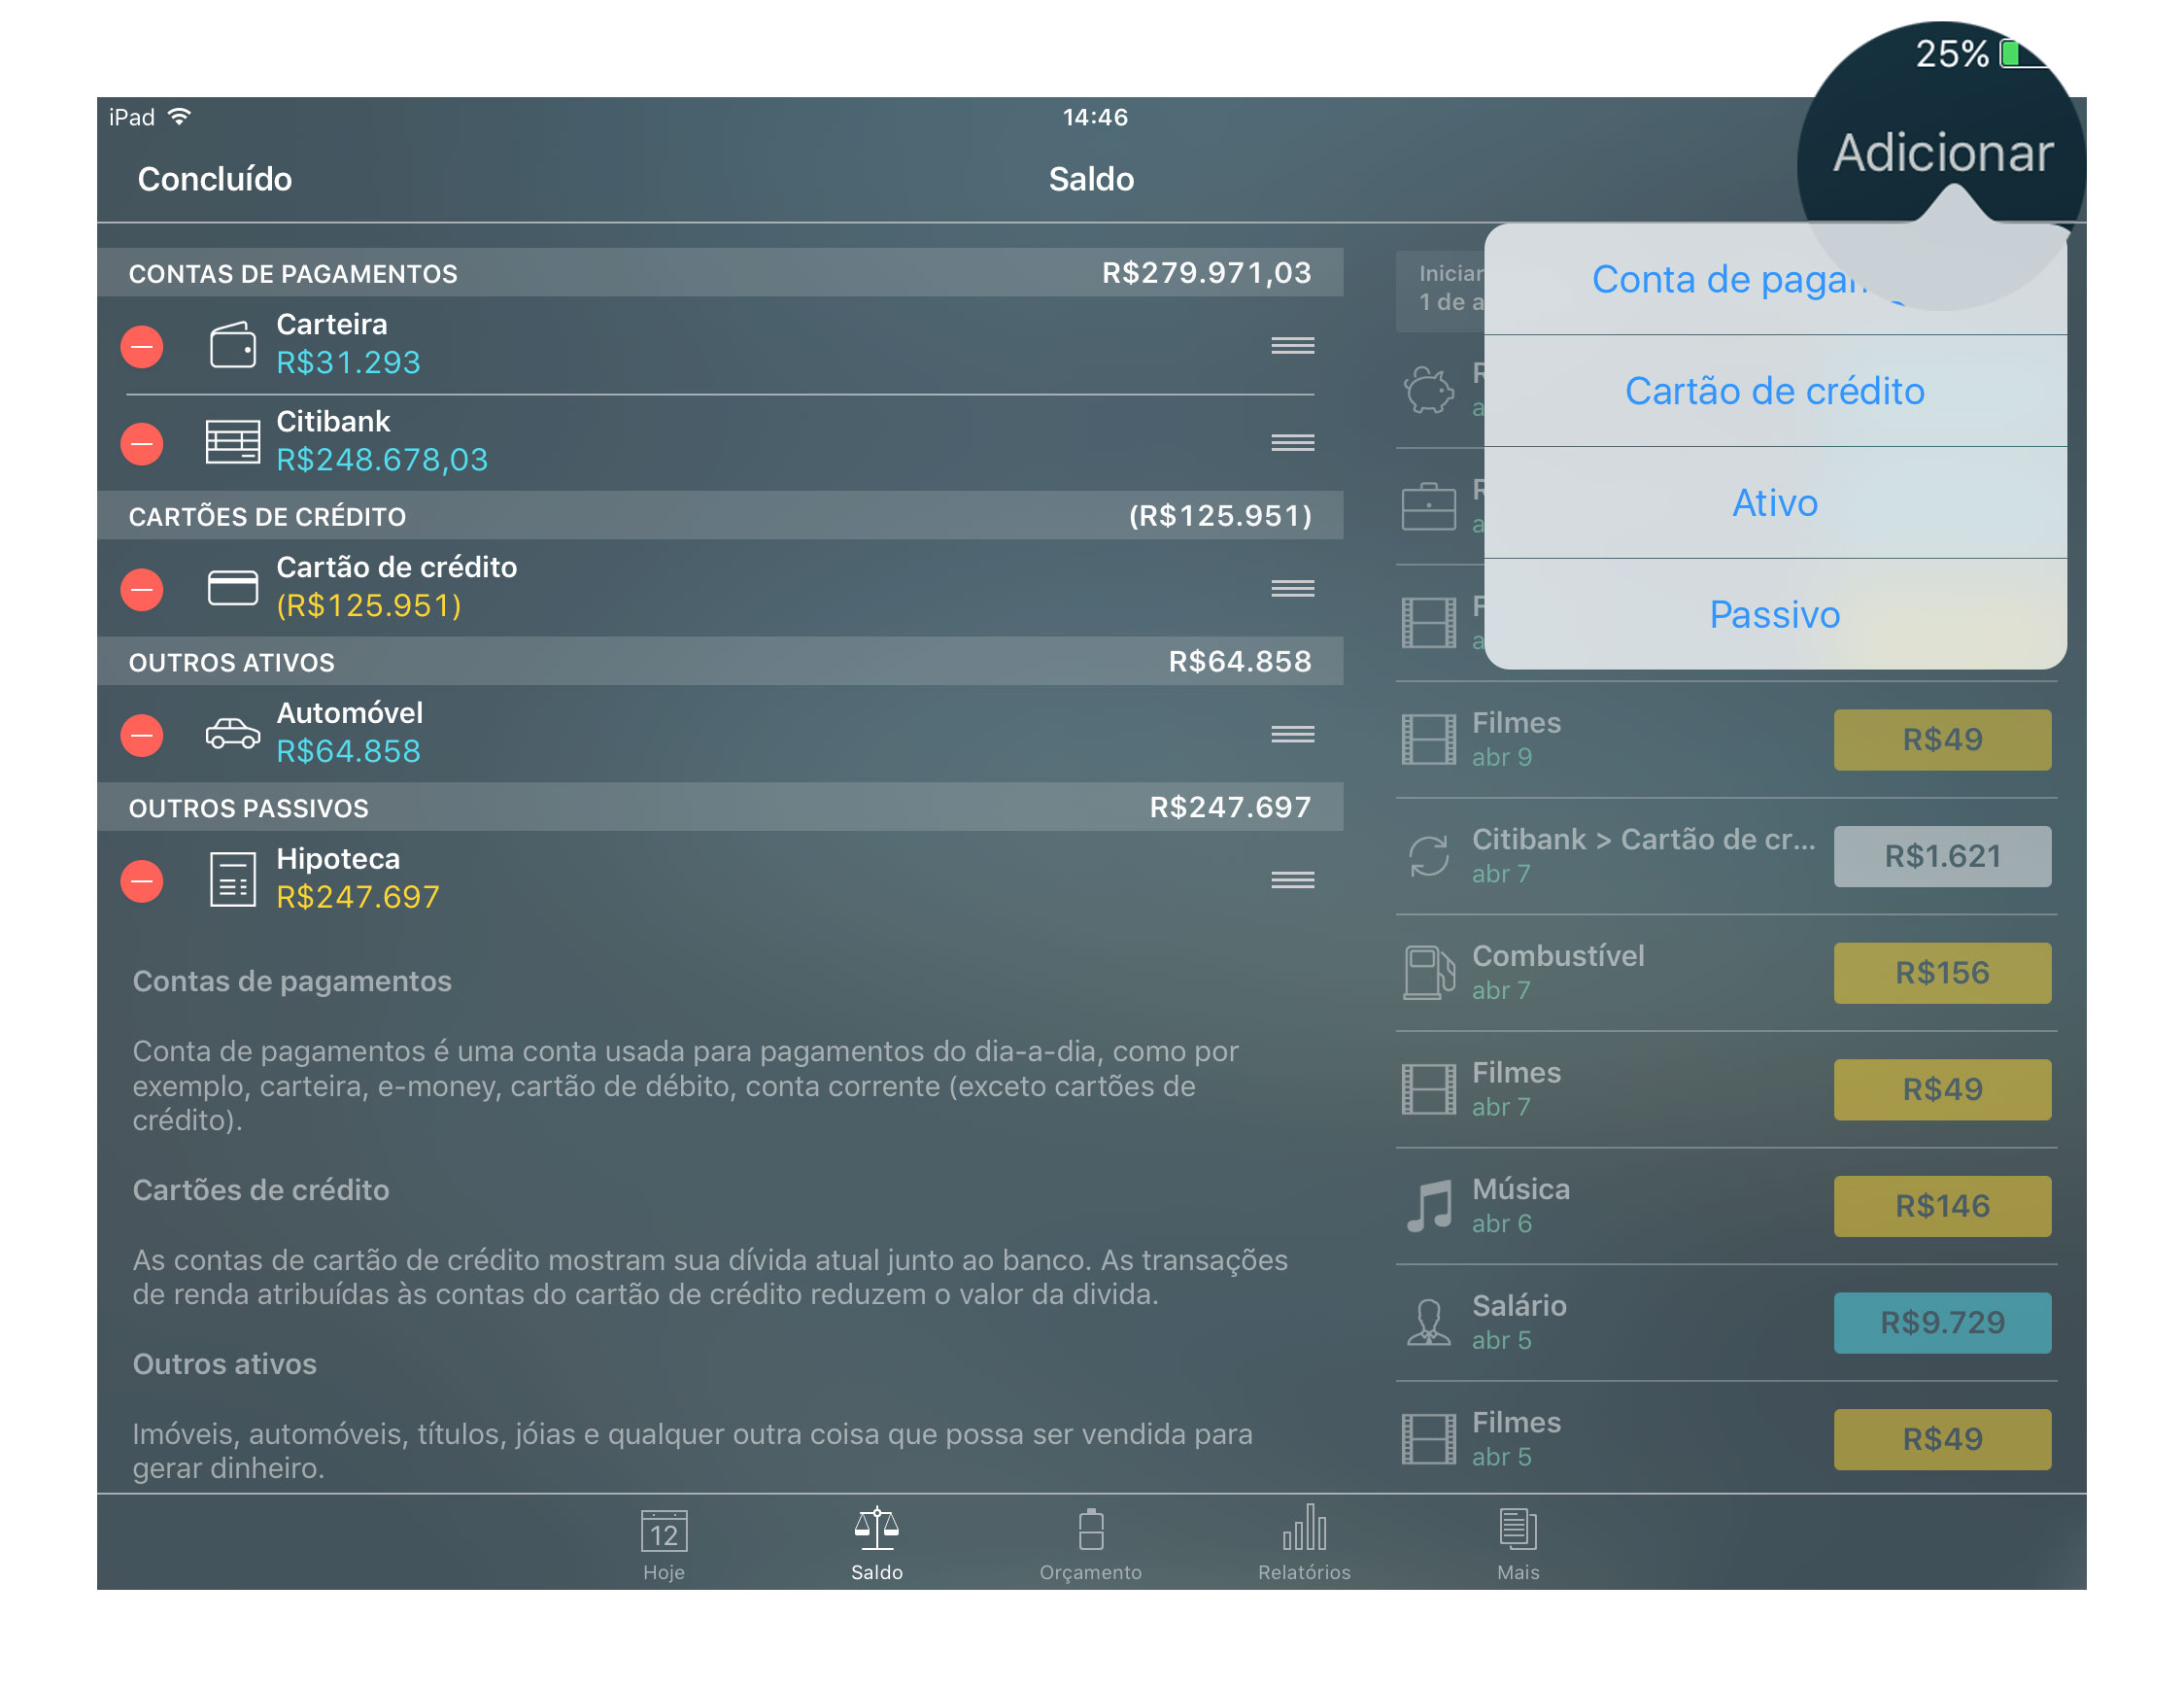 Money Pro - Contas - Adicionar - iPad